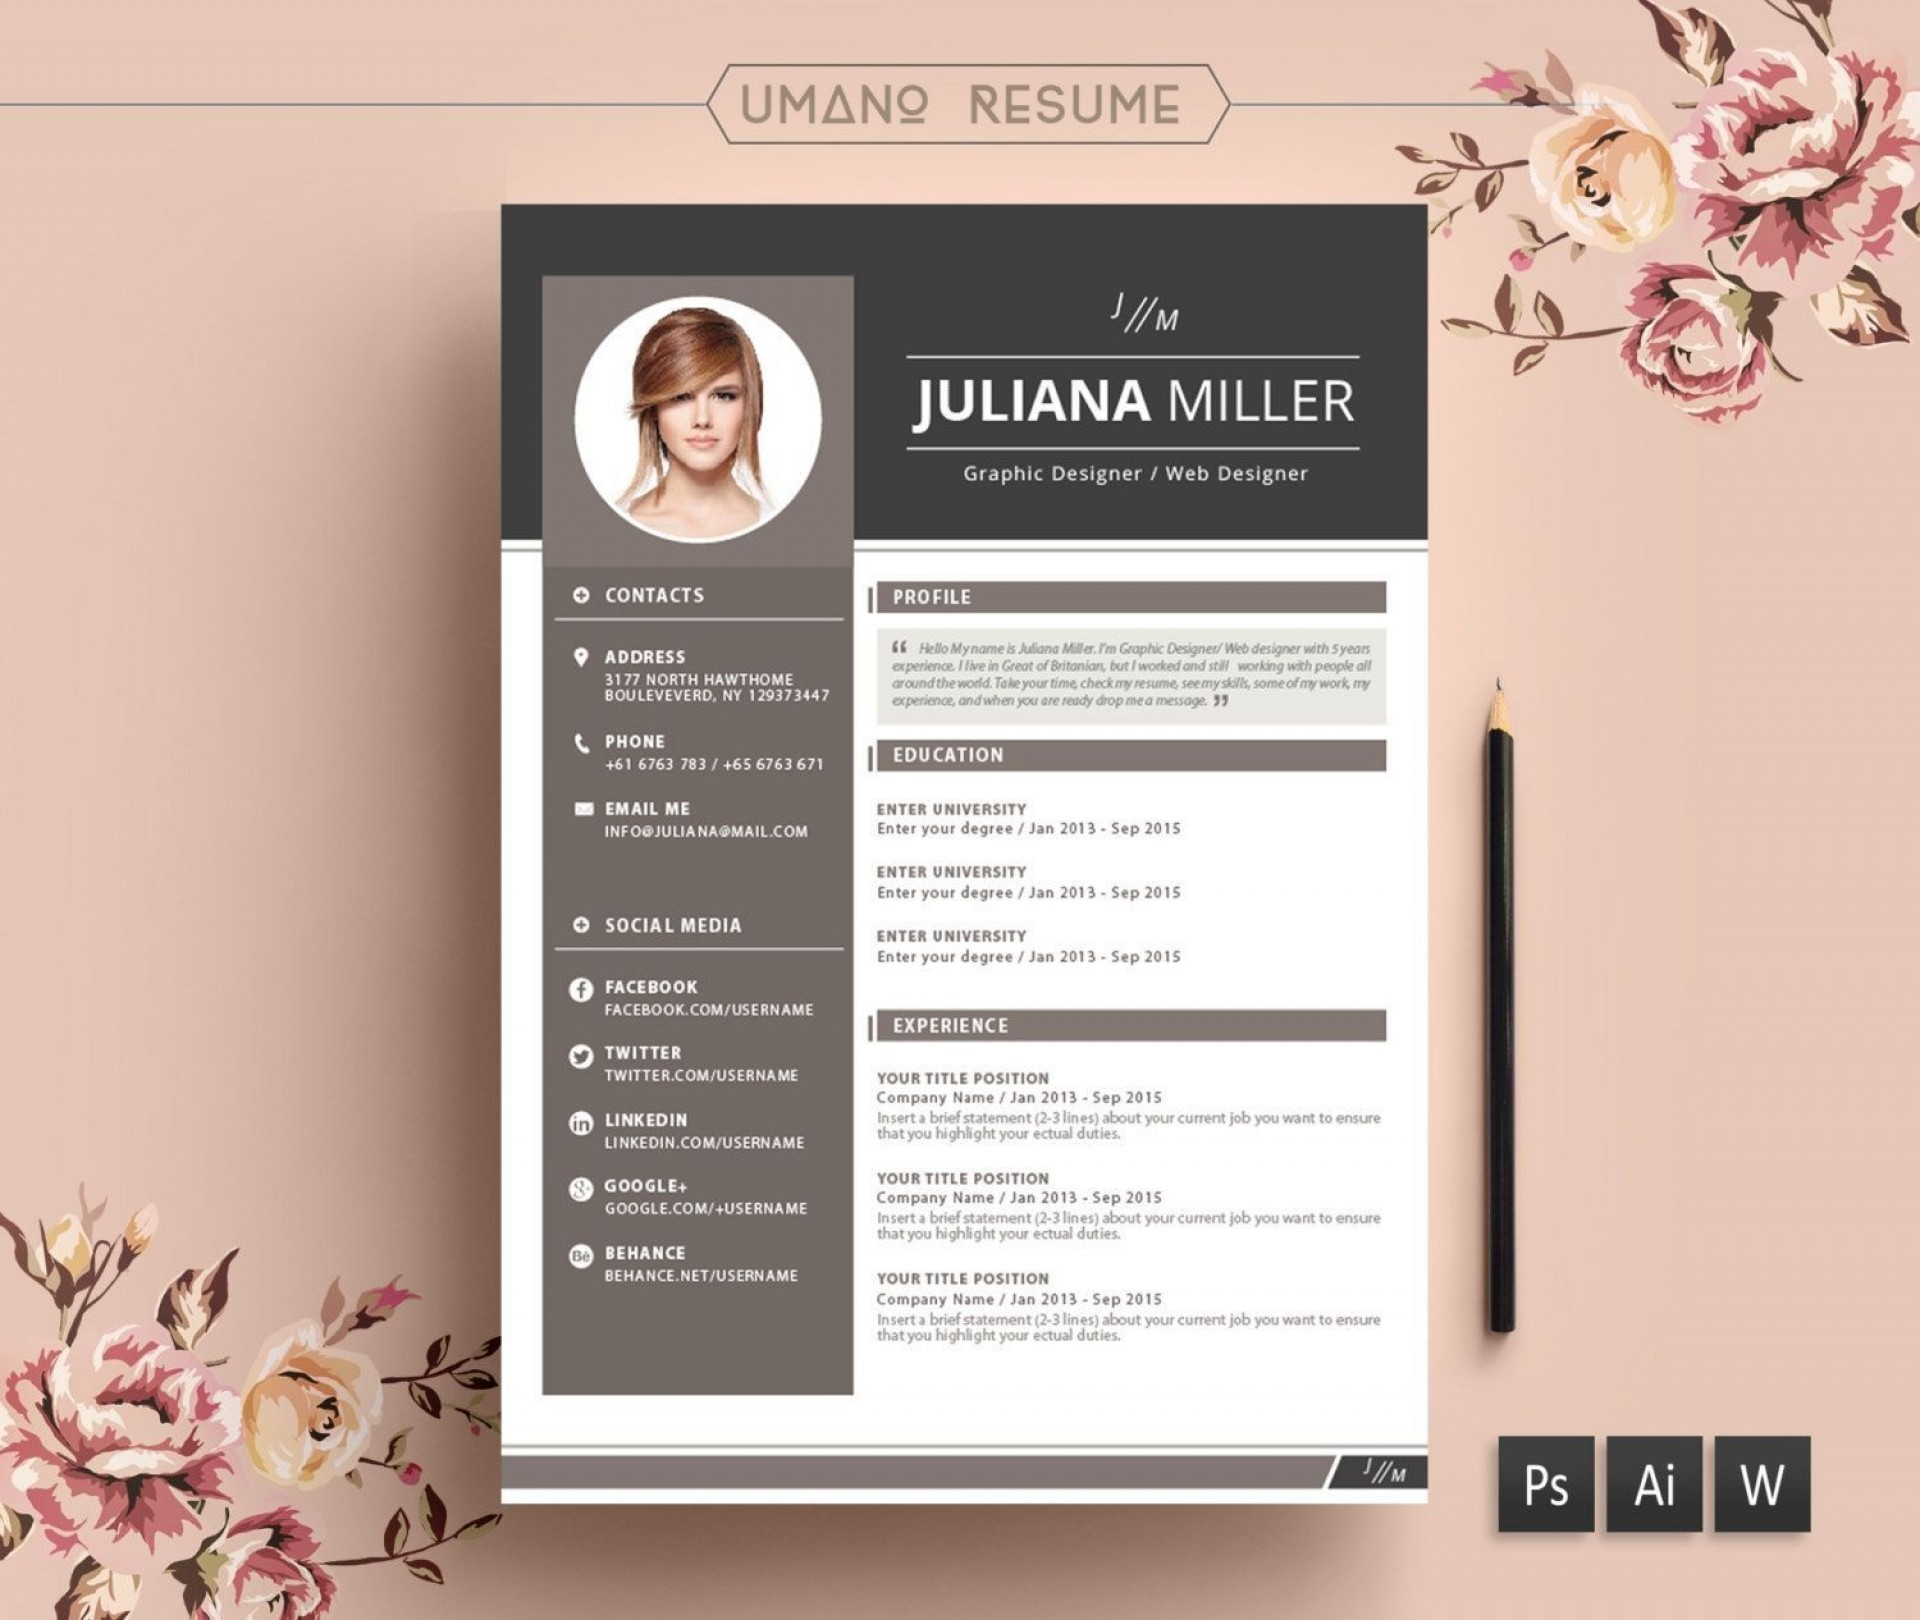 004 Dreaded Creative Resume Template Free Download High Resolution  For Microsoft Word Fresher Cv Doc1920